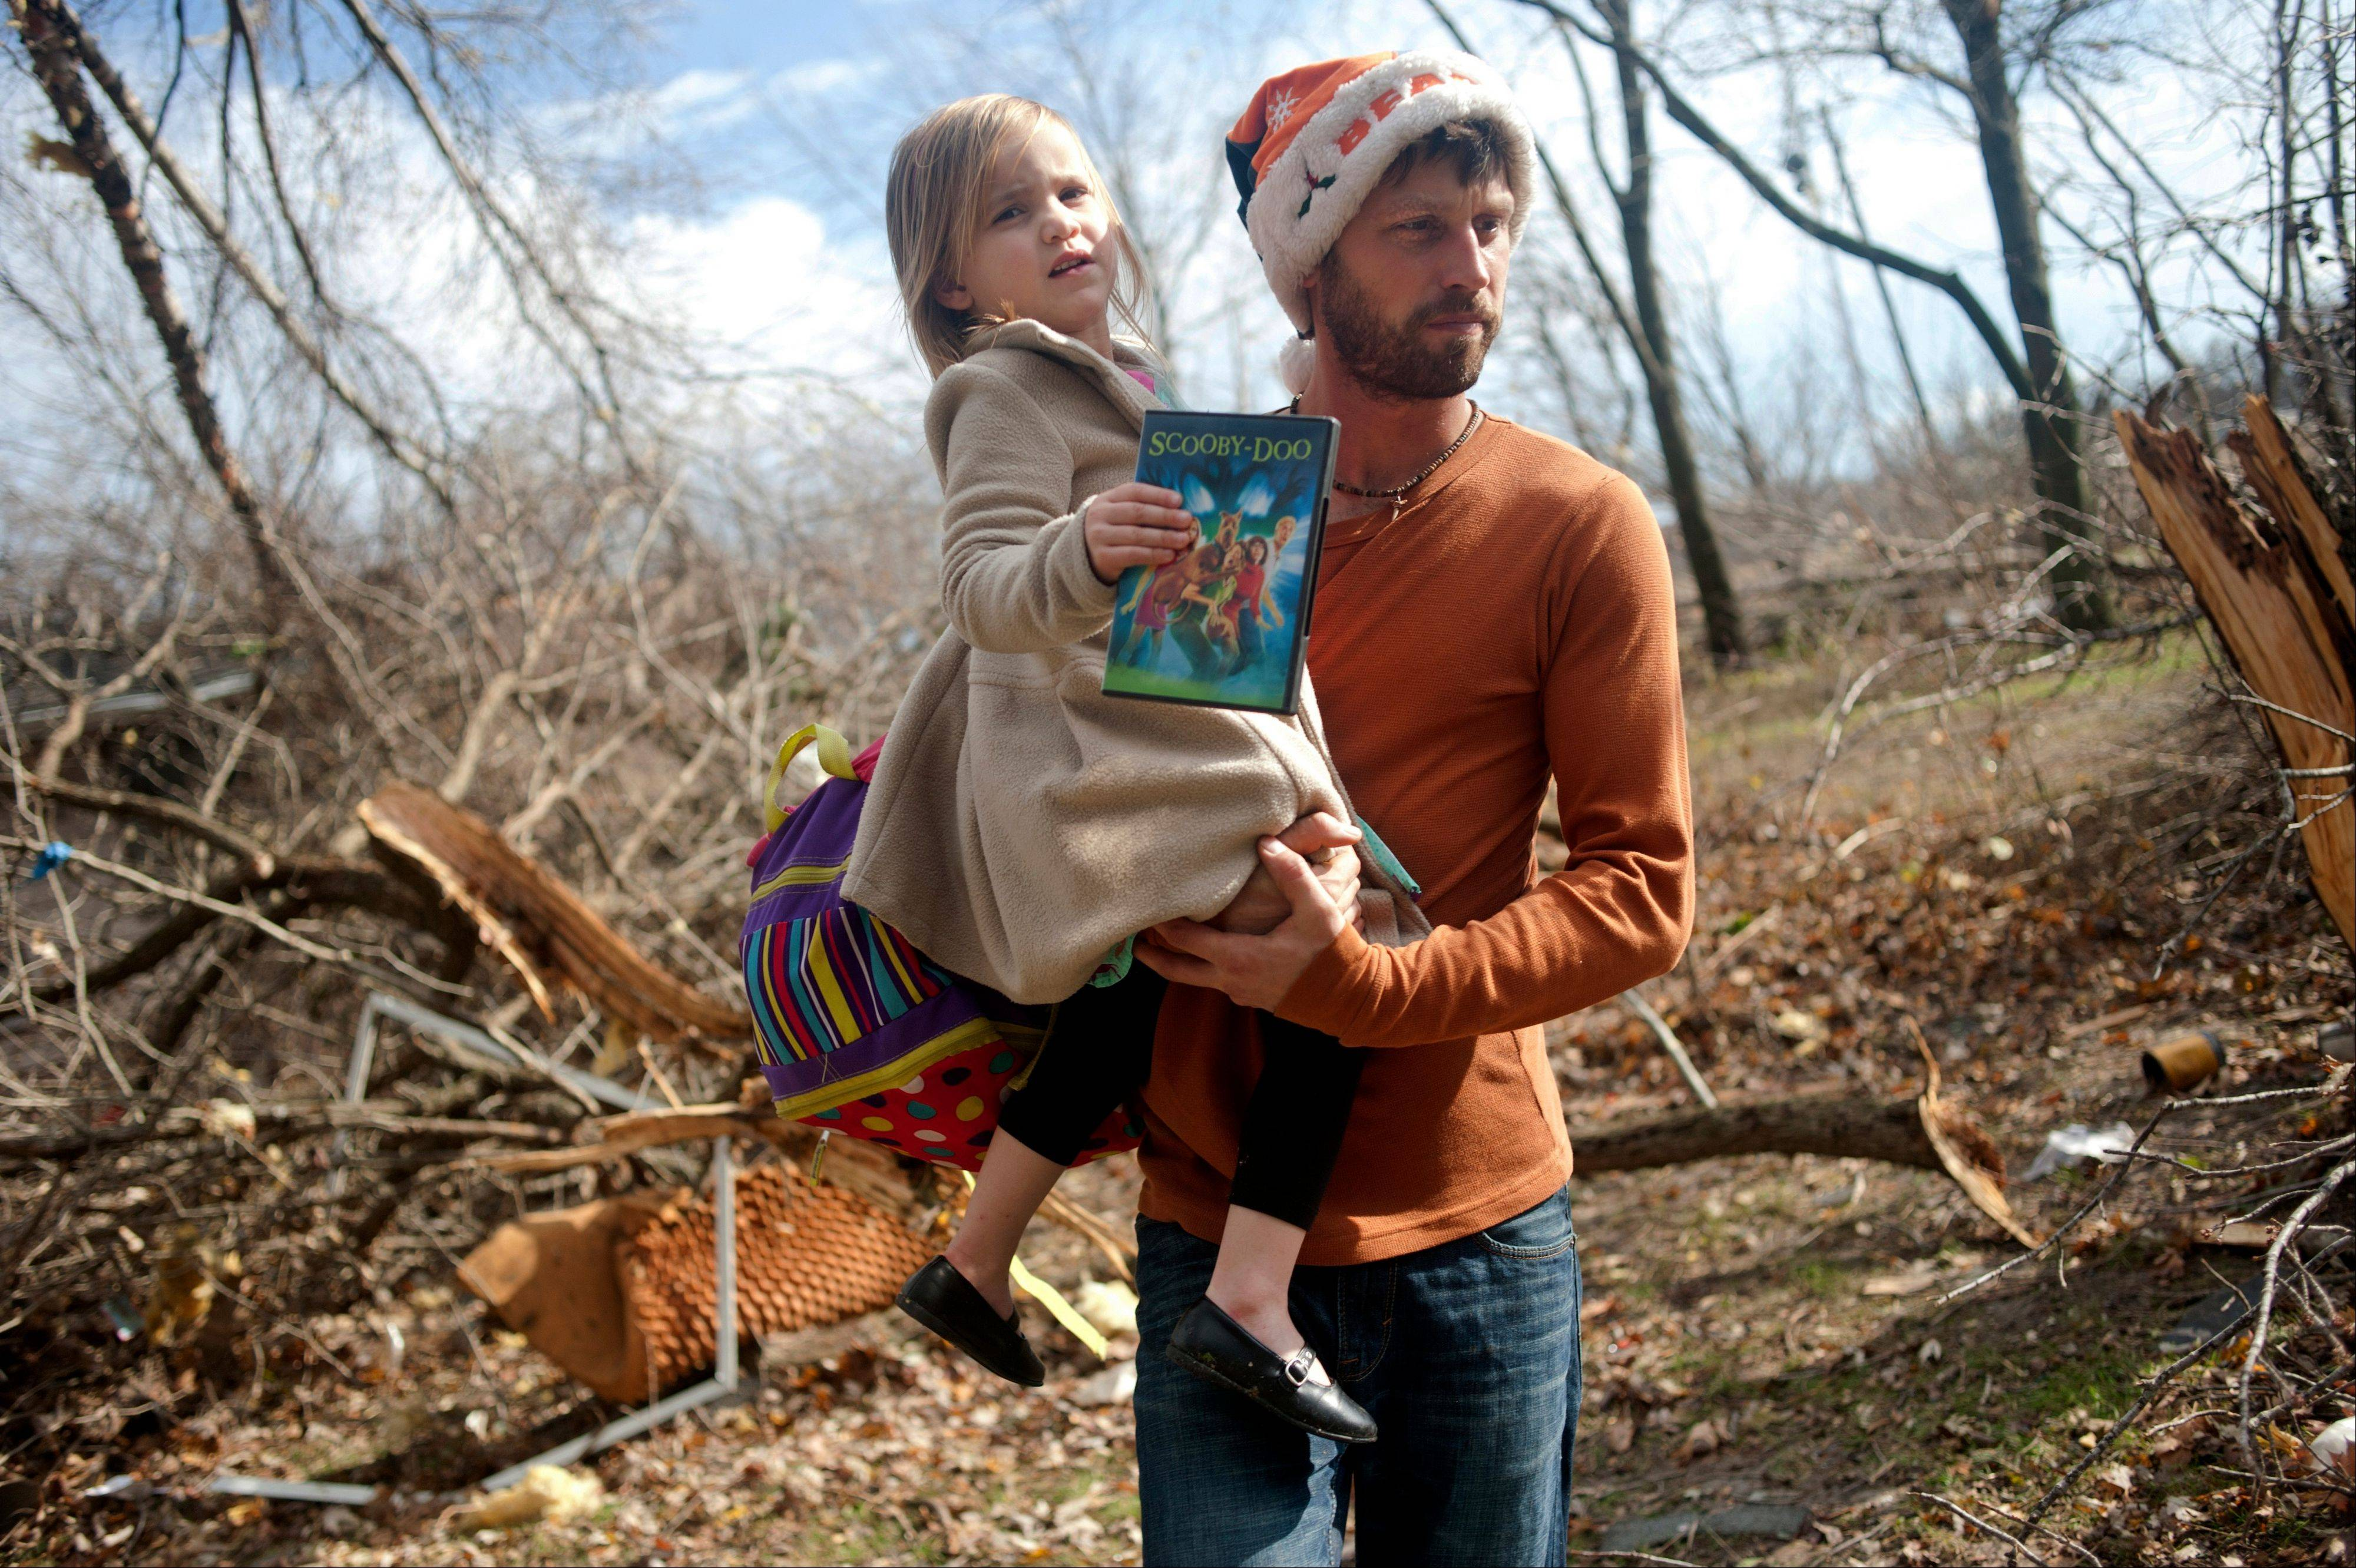 East Peoria resident Billy Vestal evacuates with his daughter, Lillian Vestal, 3, after a tornado damaged the area near Chestnut Road in East Peoria, Il.,Sunday, Nov. 17, 2013. Intense thunderstorms and tornadoes swept across the Midwest on Sunday, causing extensive damage in several central Illinois communities while sending people to their basements for shelter.